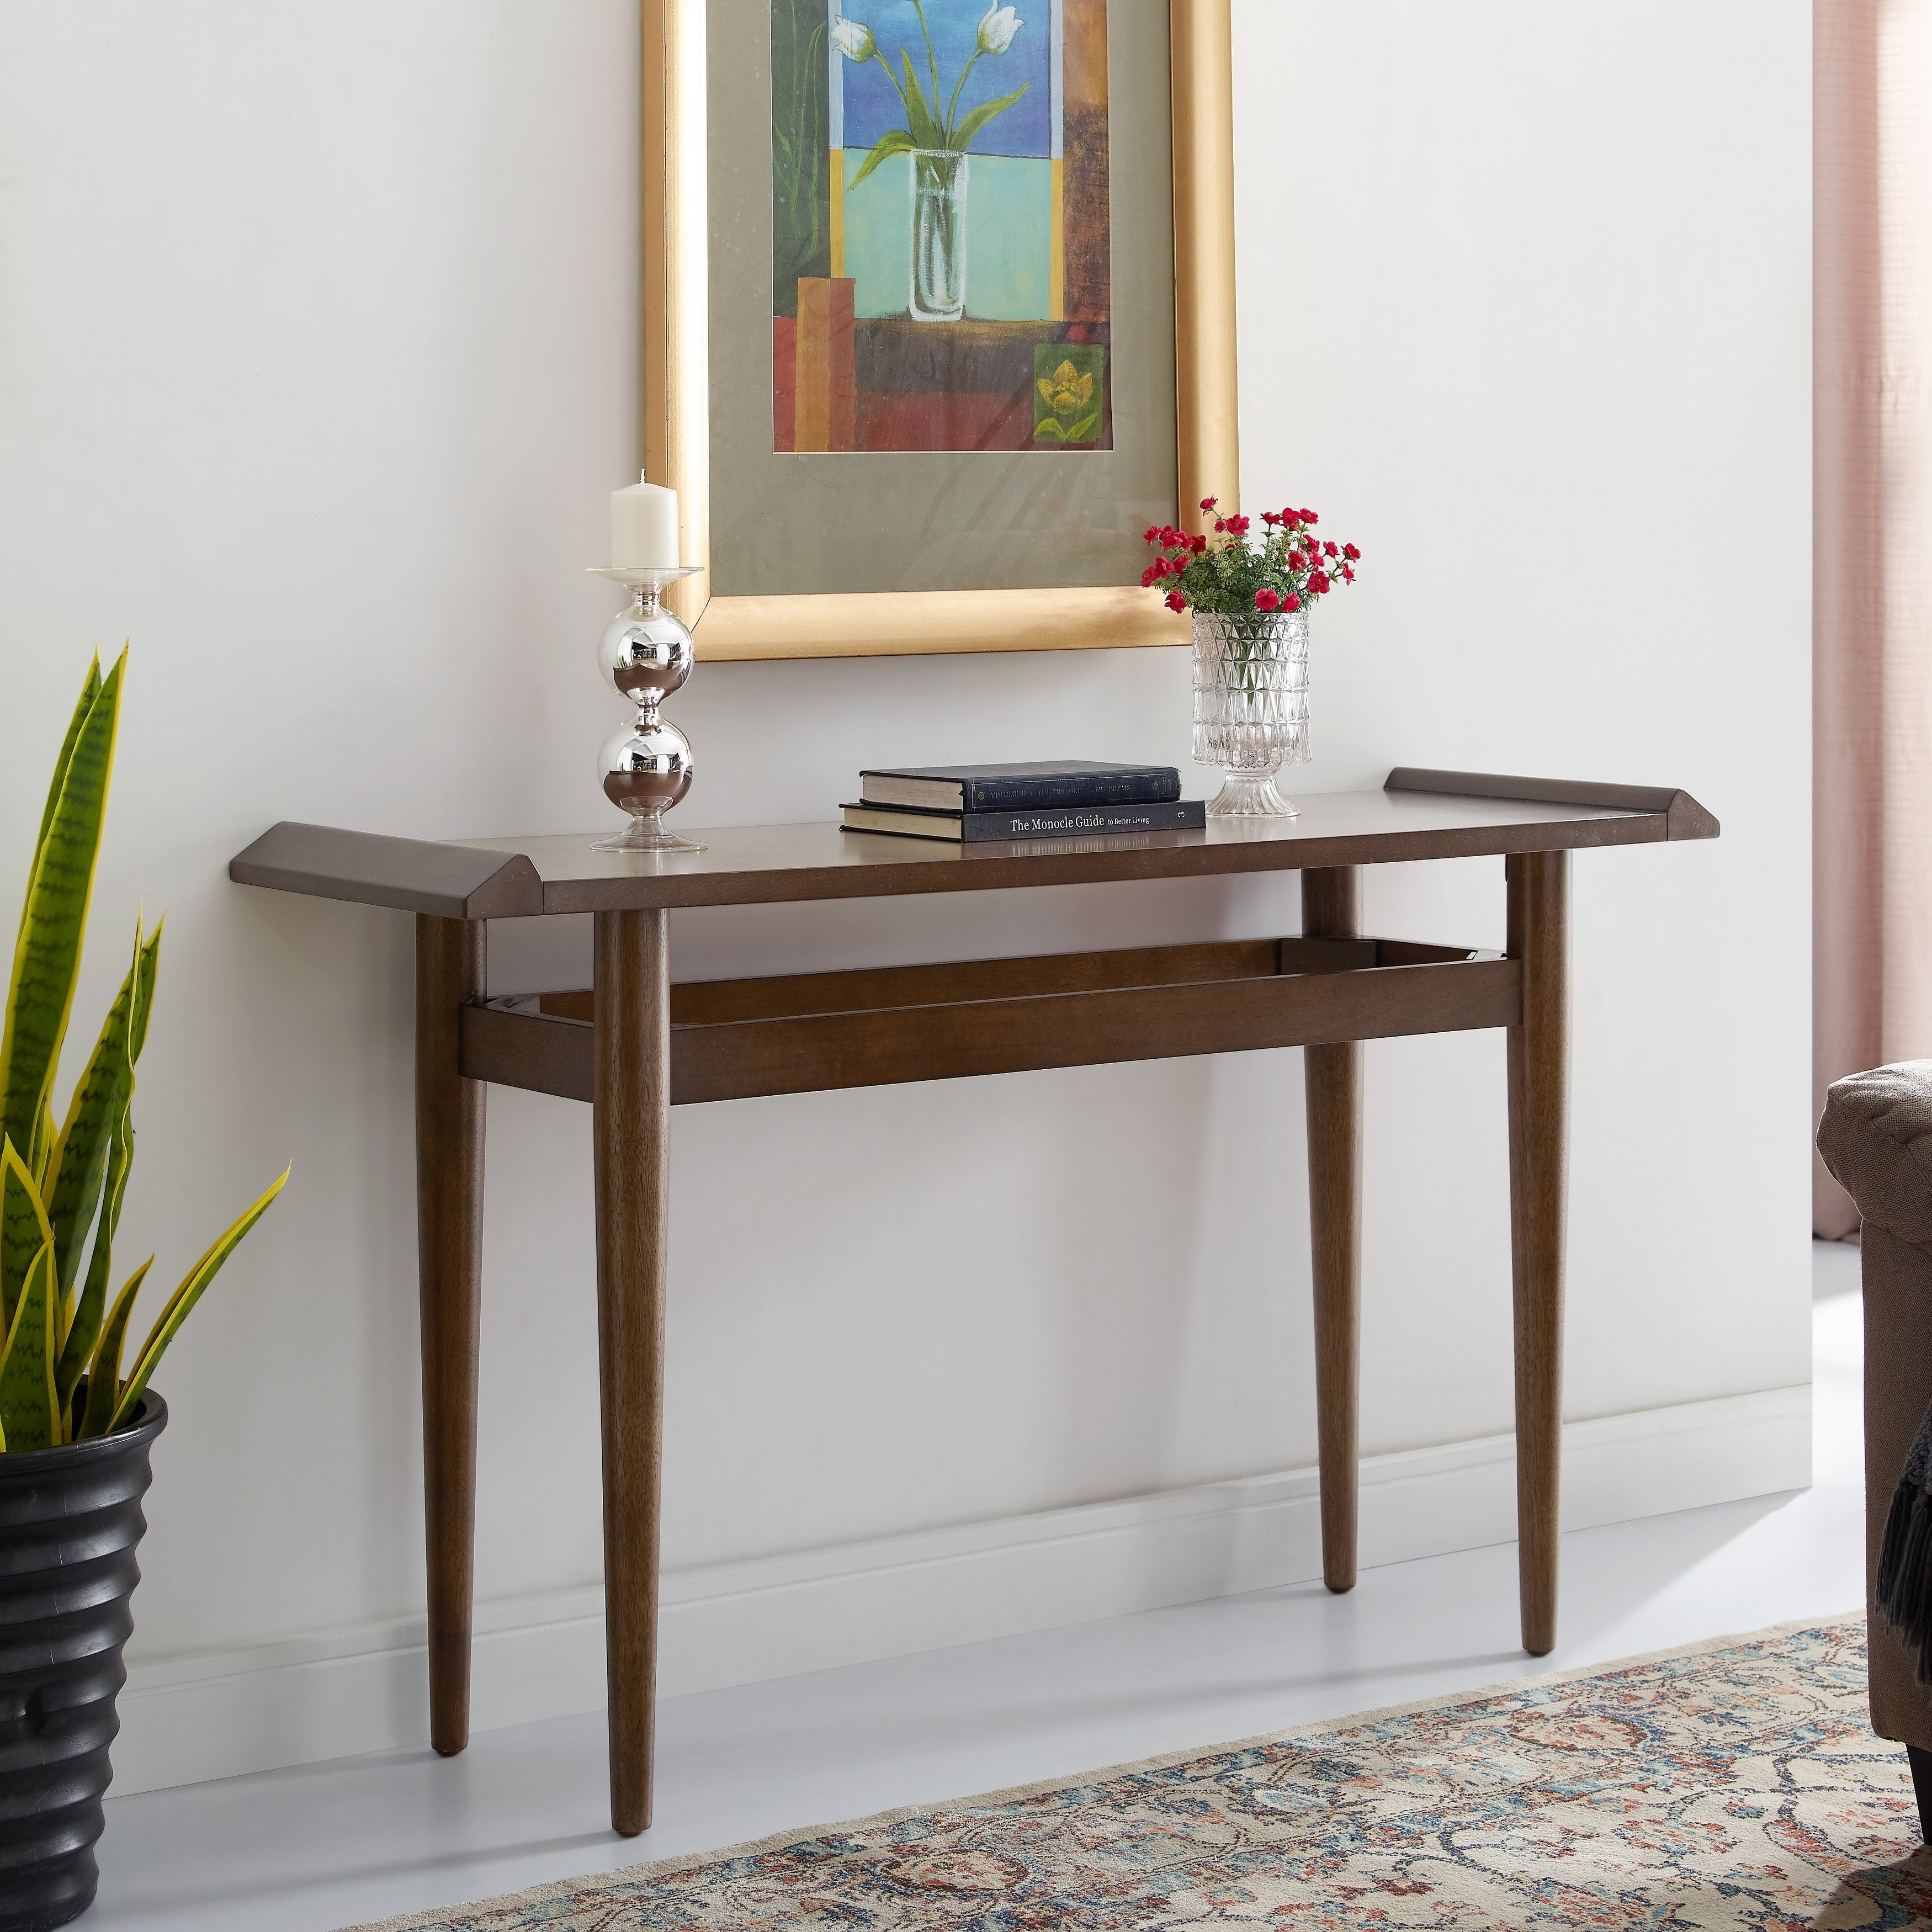 Shop Bedrick Midcentury Modern Console Table - Free Shipping Today ...